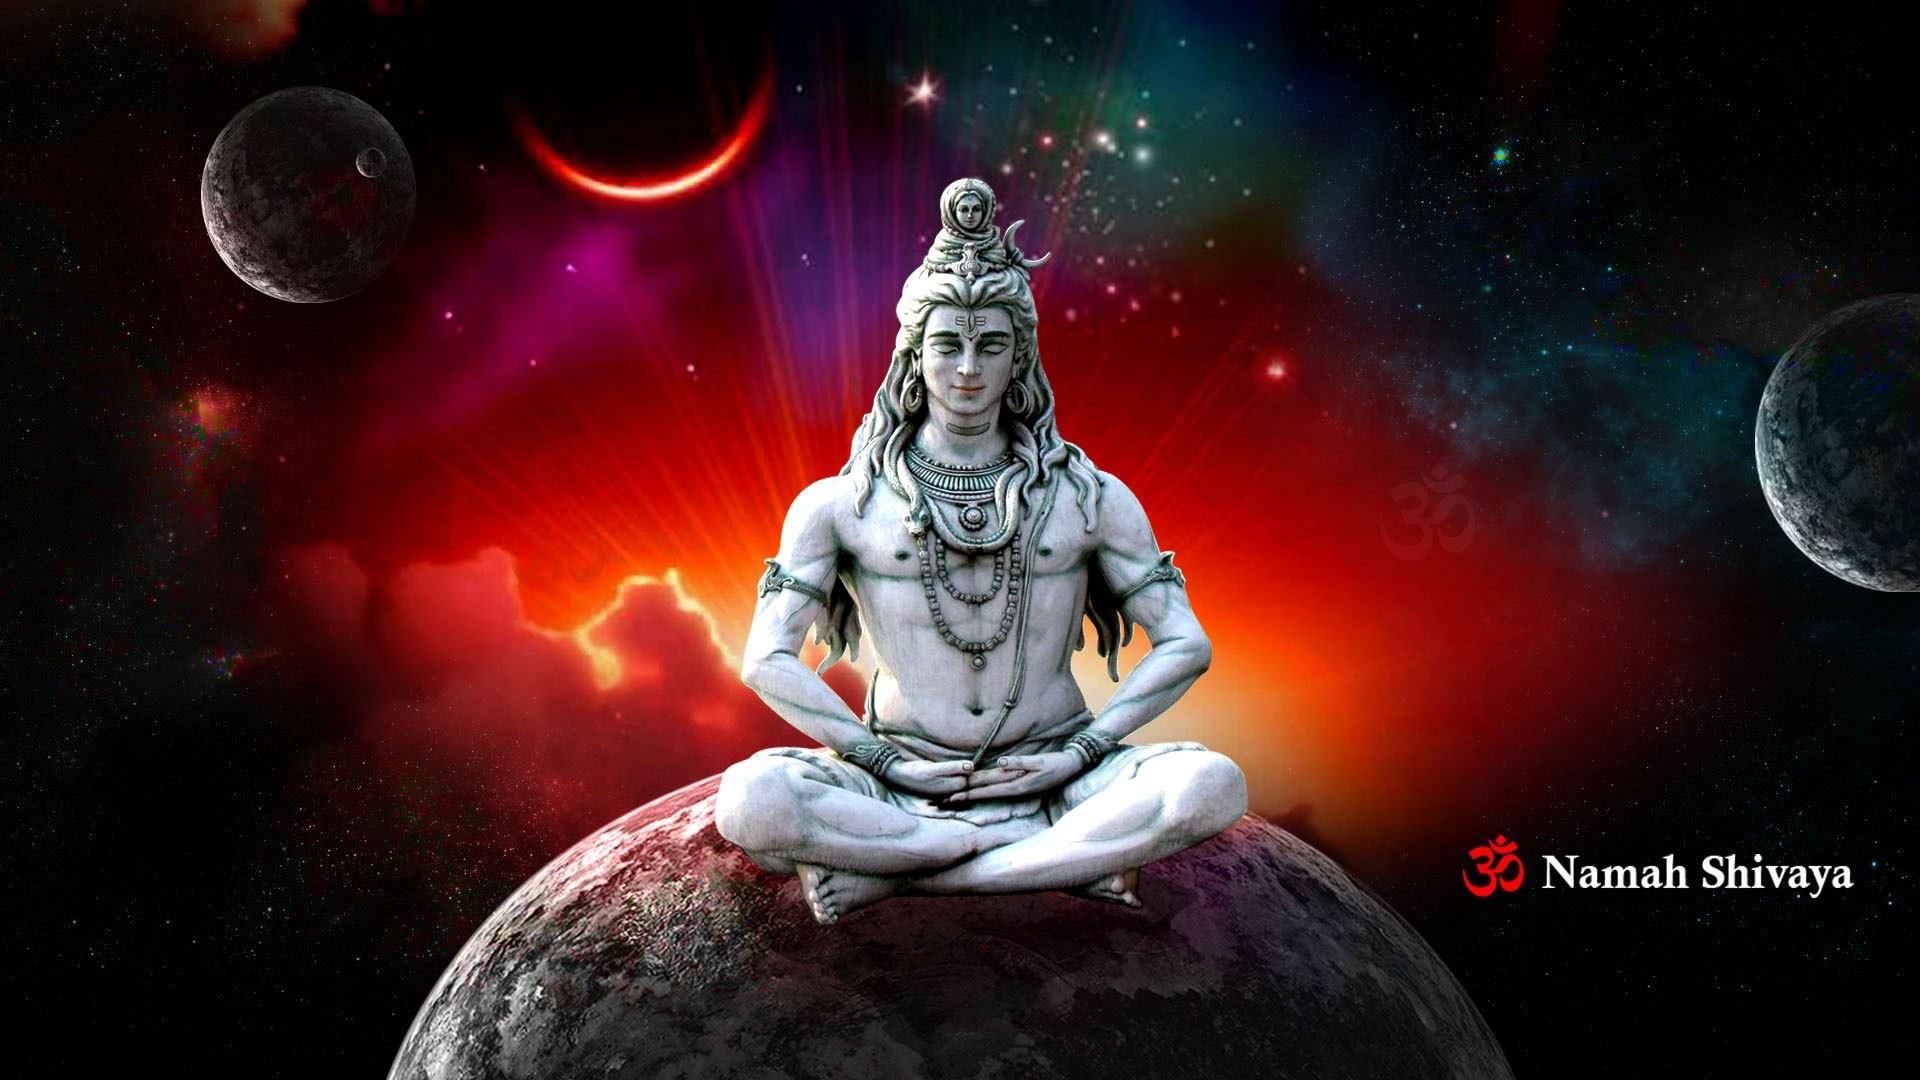 1920x1080 Lord shiva in rudra avatar animated wallpapers